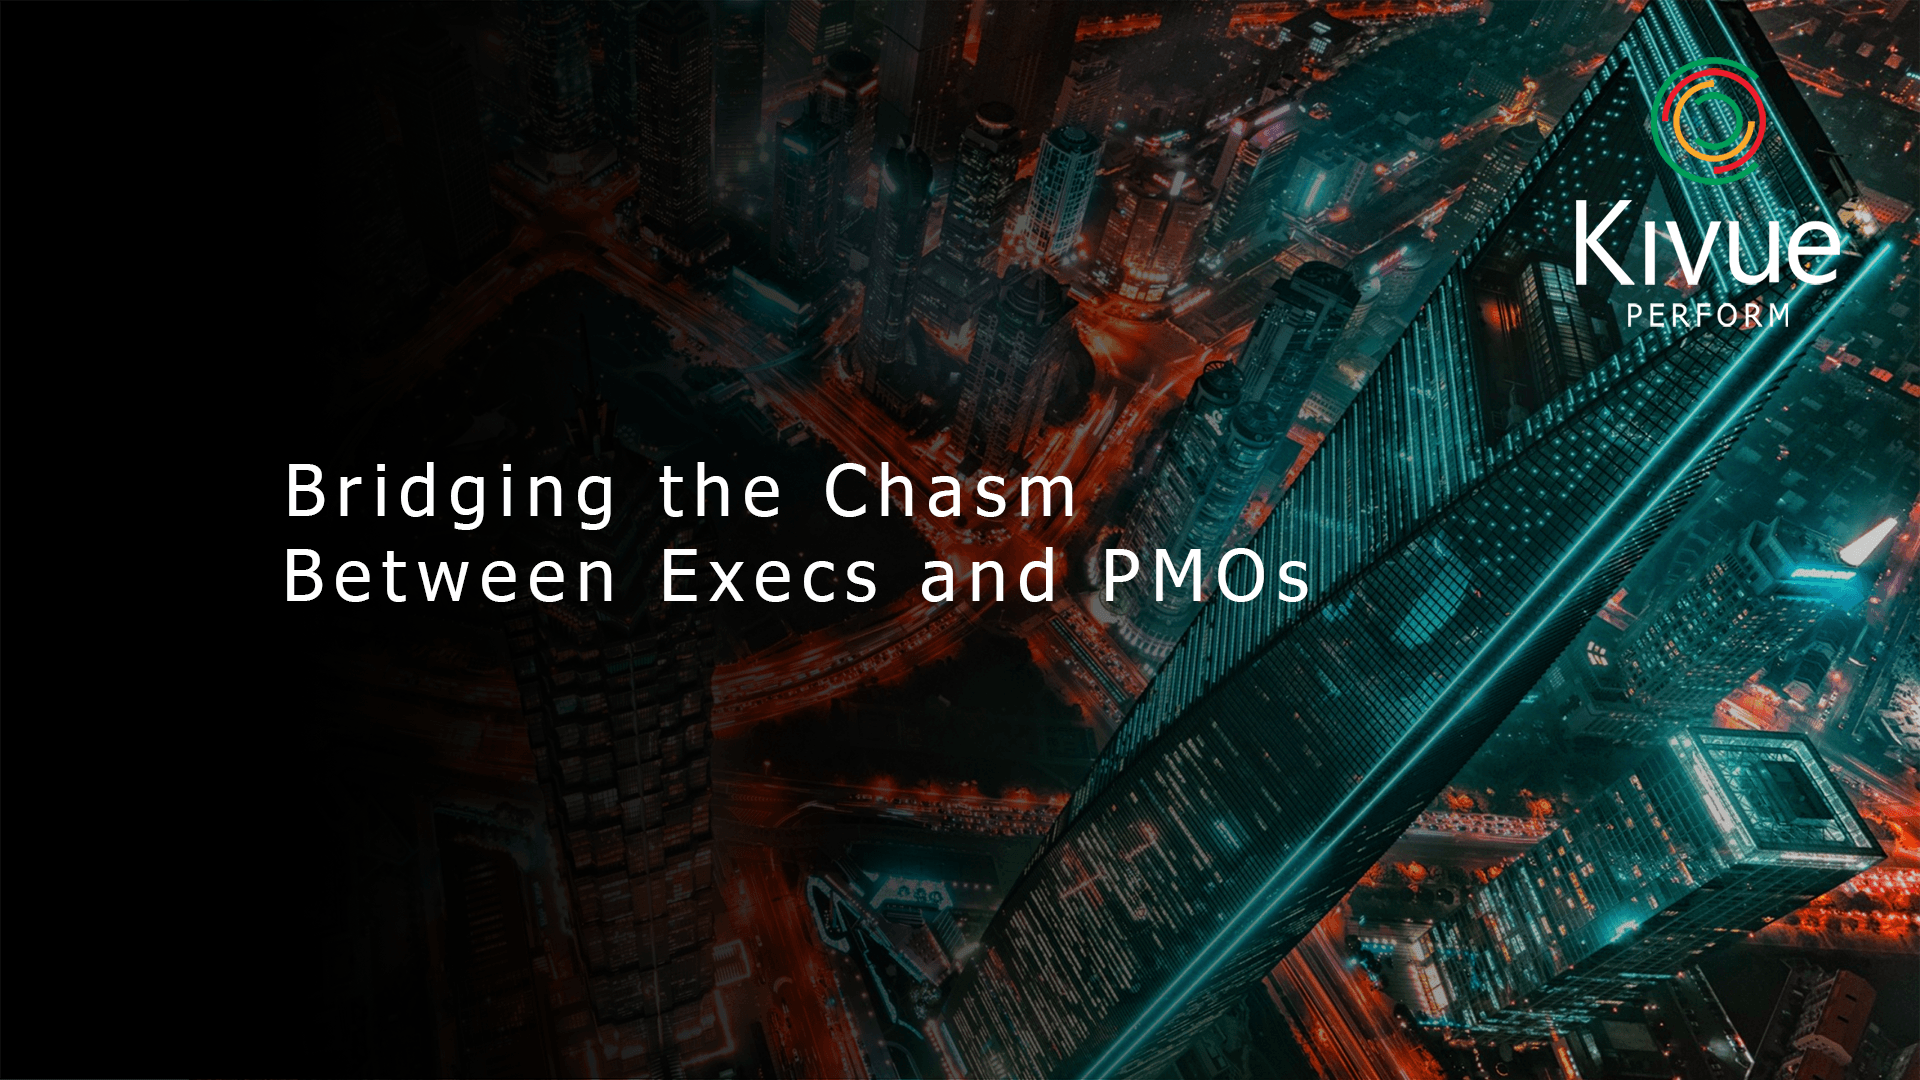 Kivue  PMO Flashmob Webinar Bridging the Chasm Between Execs and PMOs